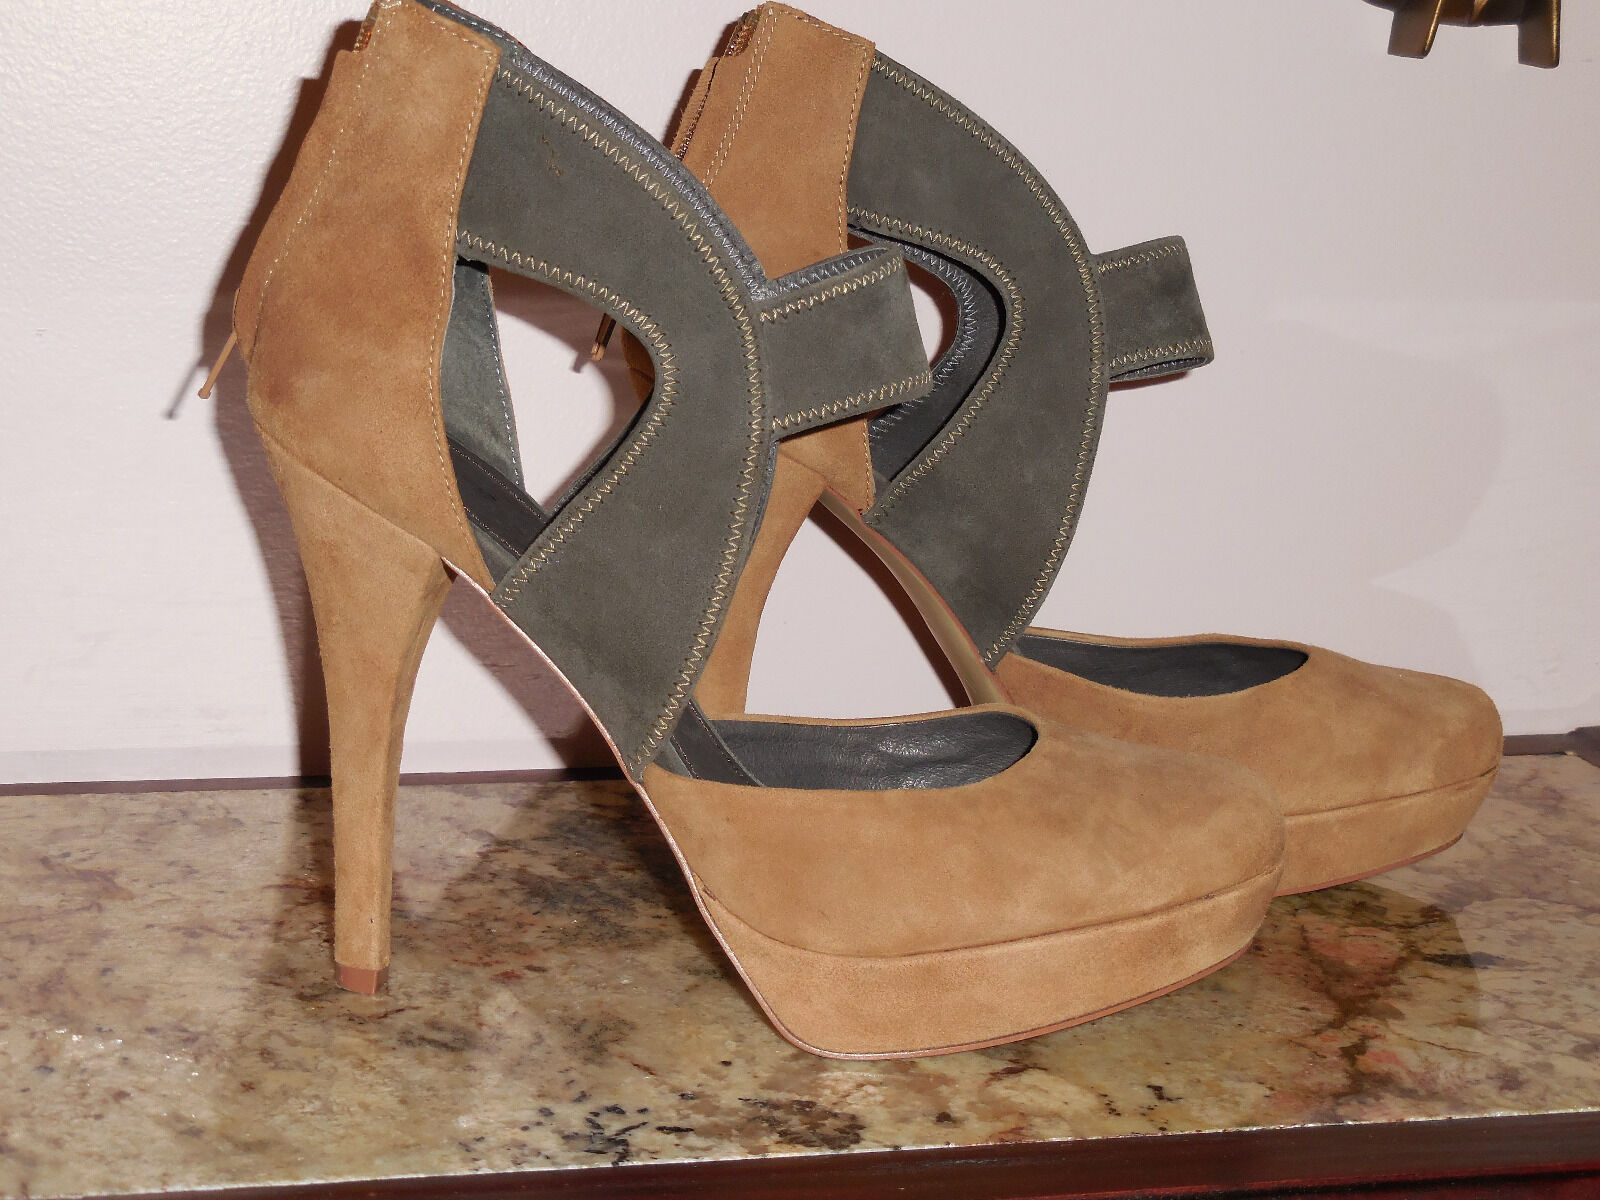 7 For All Mankind Schuhes Größe 10B  Camel and Gray Suede 5 Inch Heels